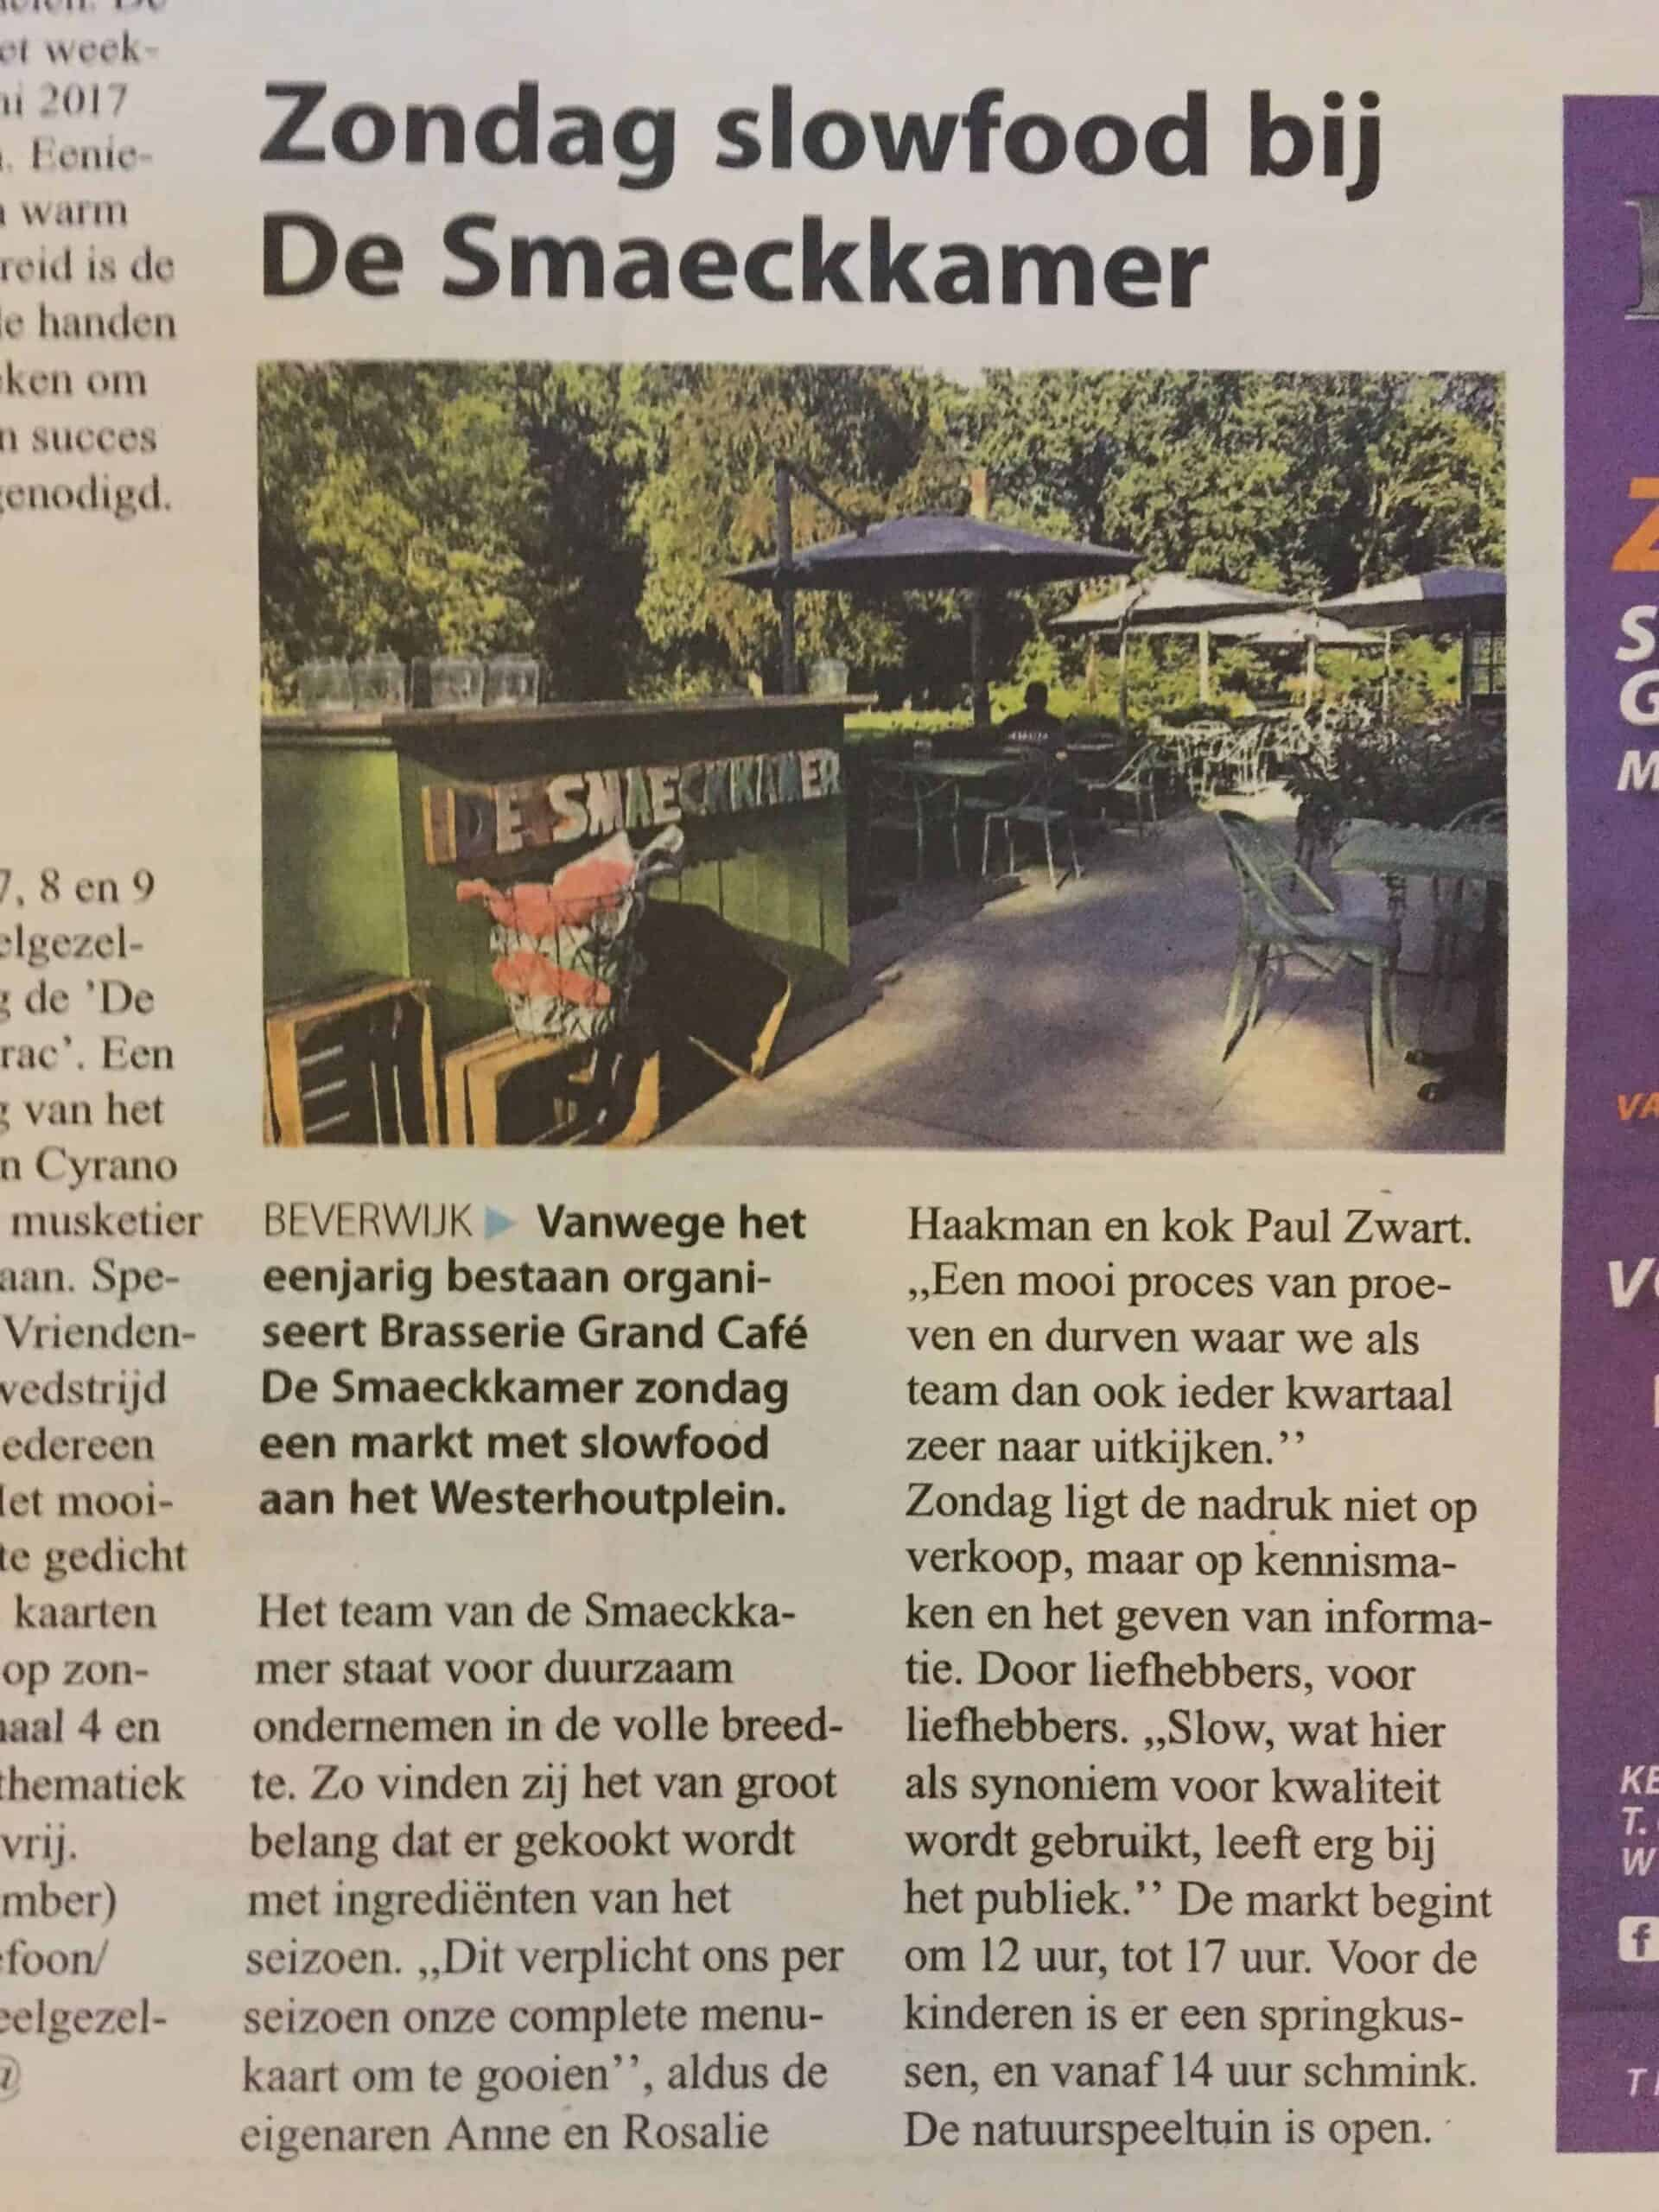 Redactioneel stuk in dagblad De Kennemer